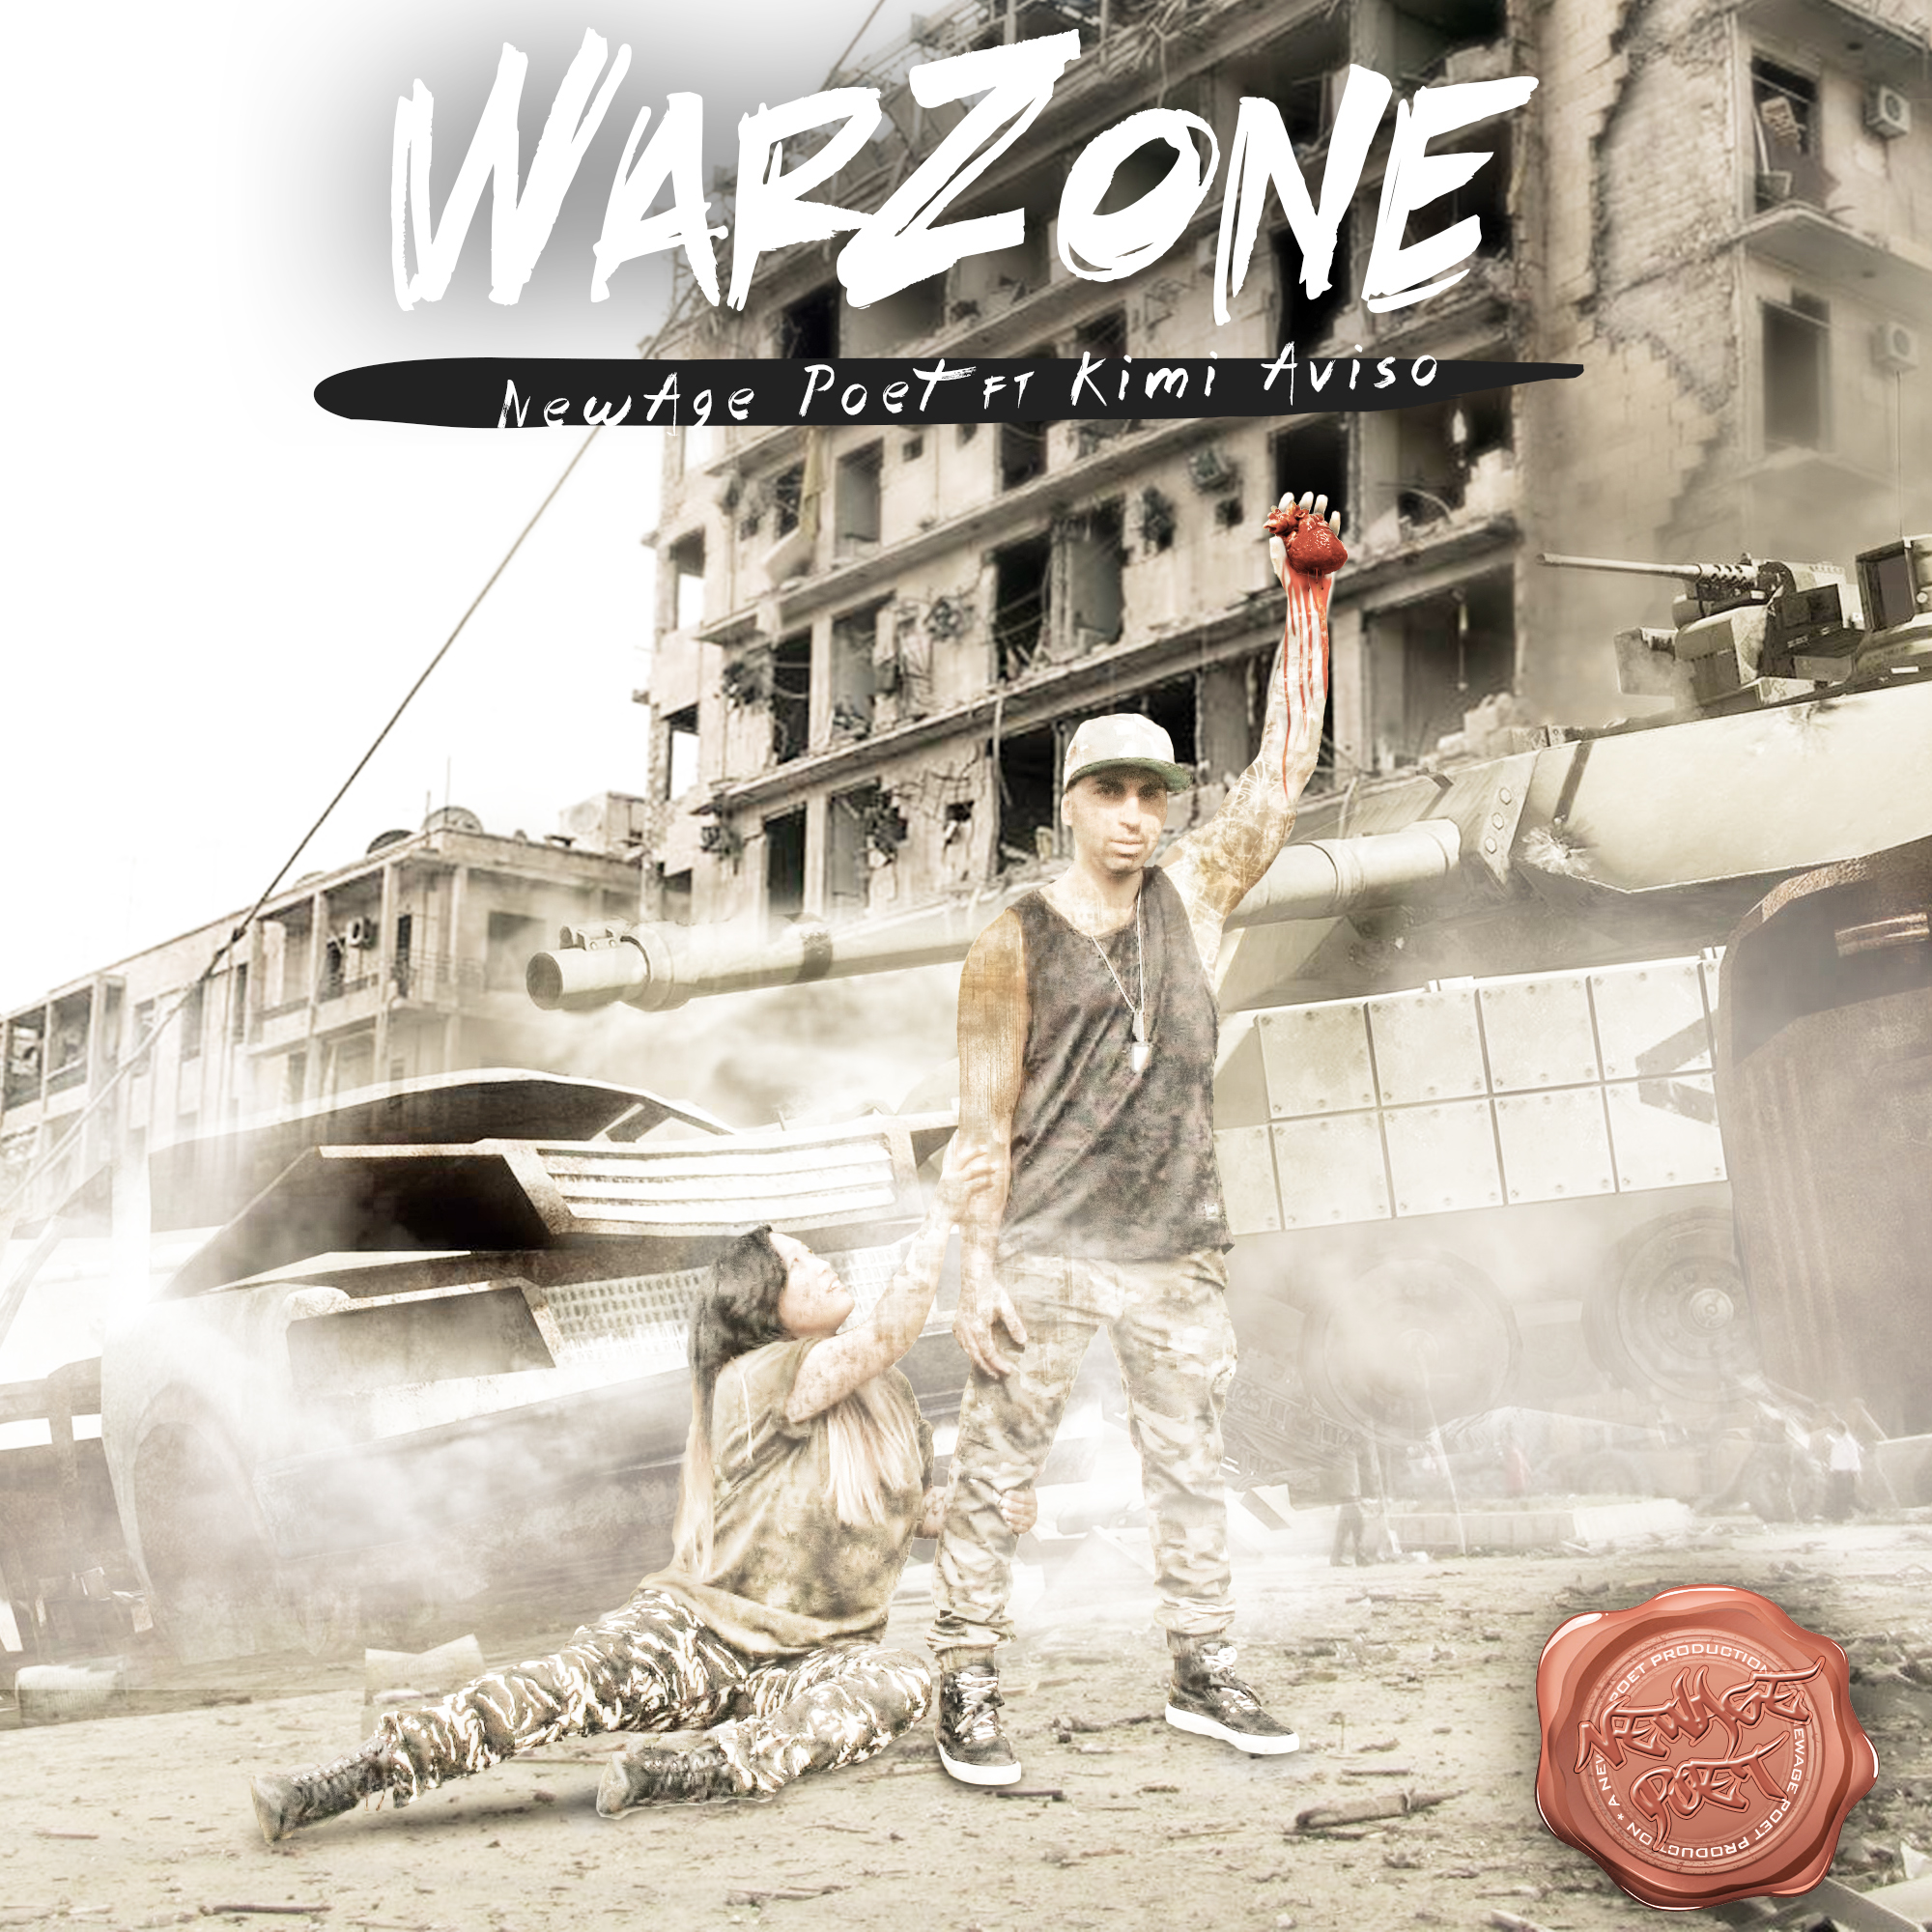 WarZone Album Cover | NewAge Poet